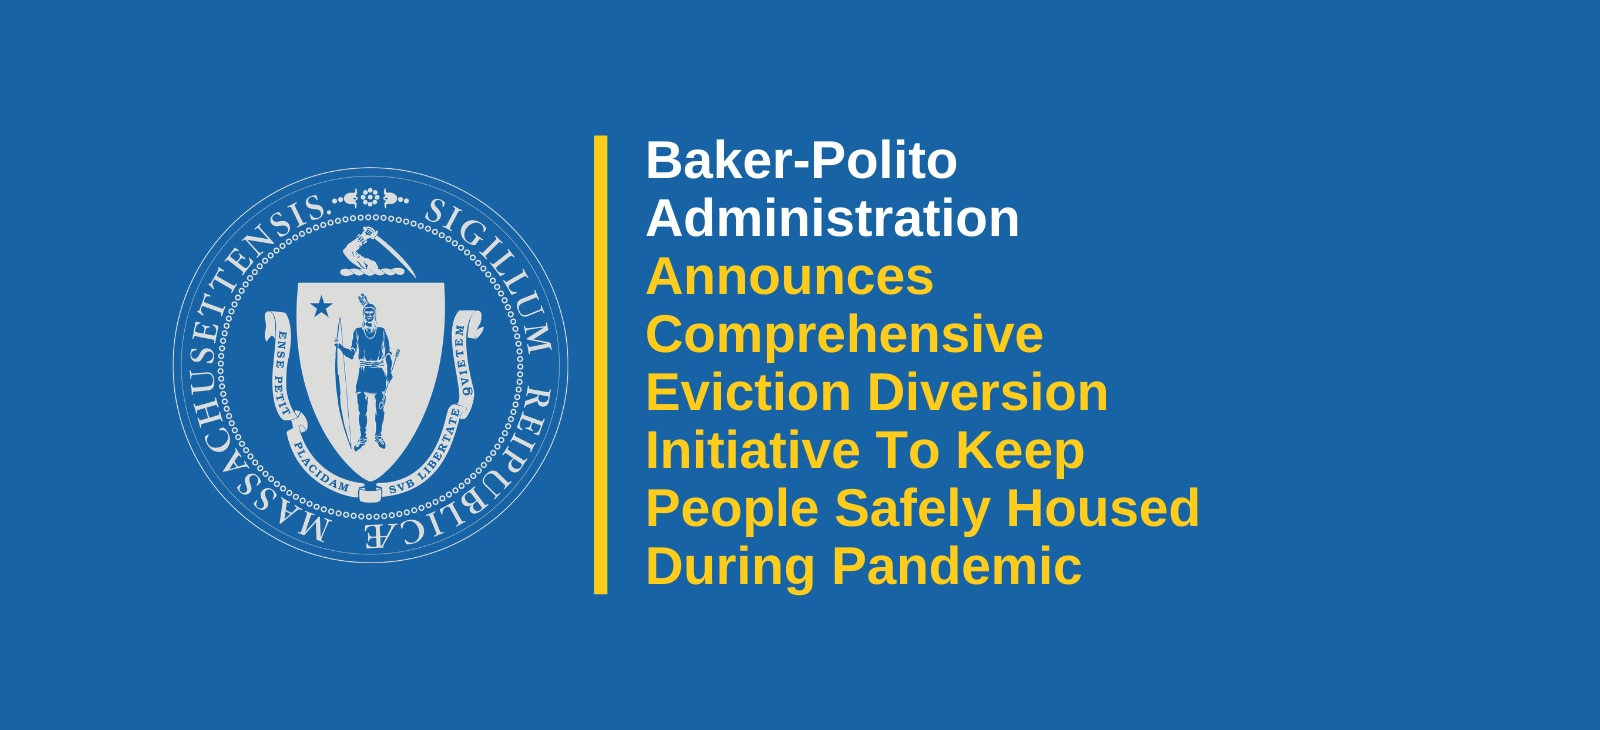 Baker-Polito Administration Announces Comprehensive Eviction Diversion Initiative To Keep People Safely Housed During Pandemic